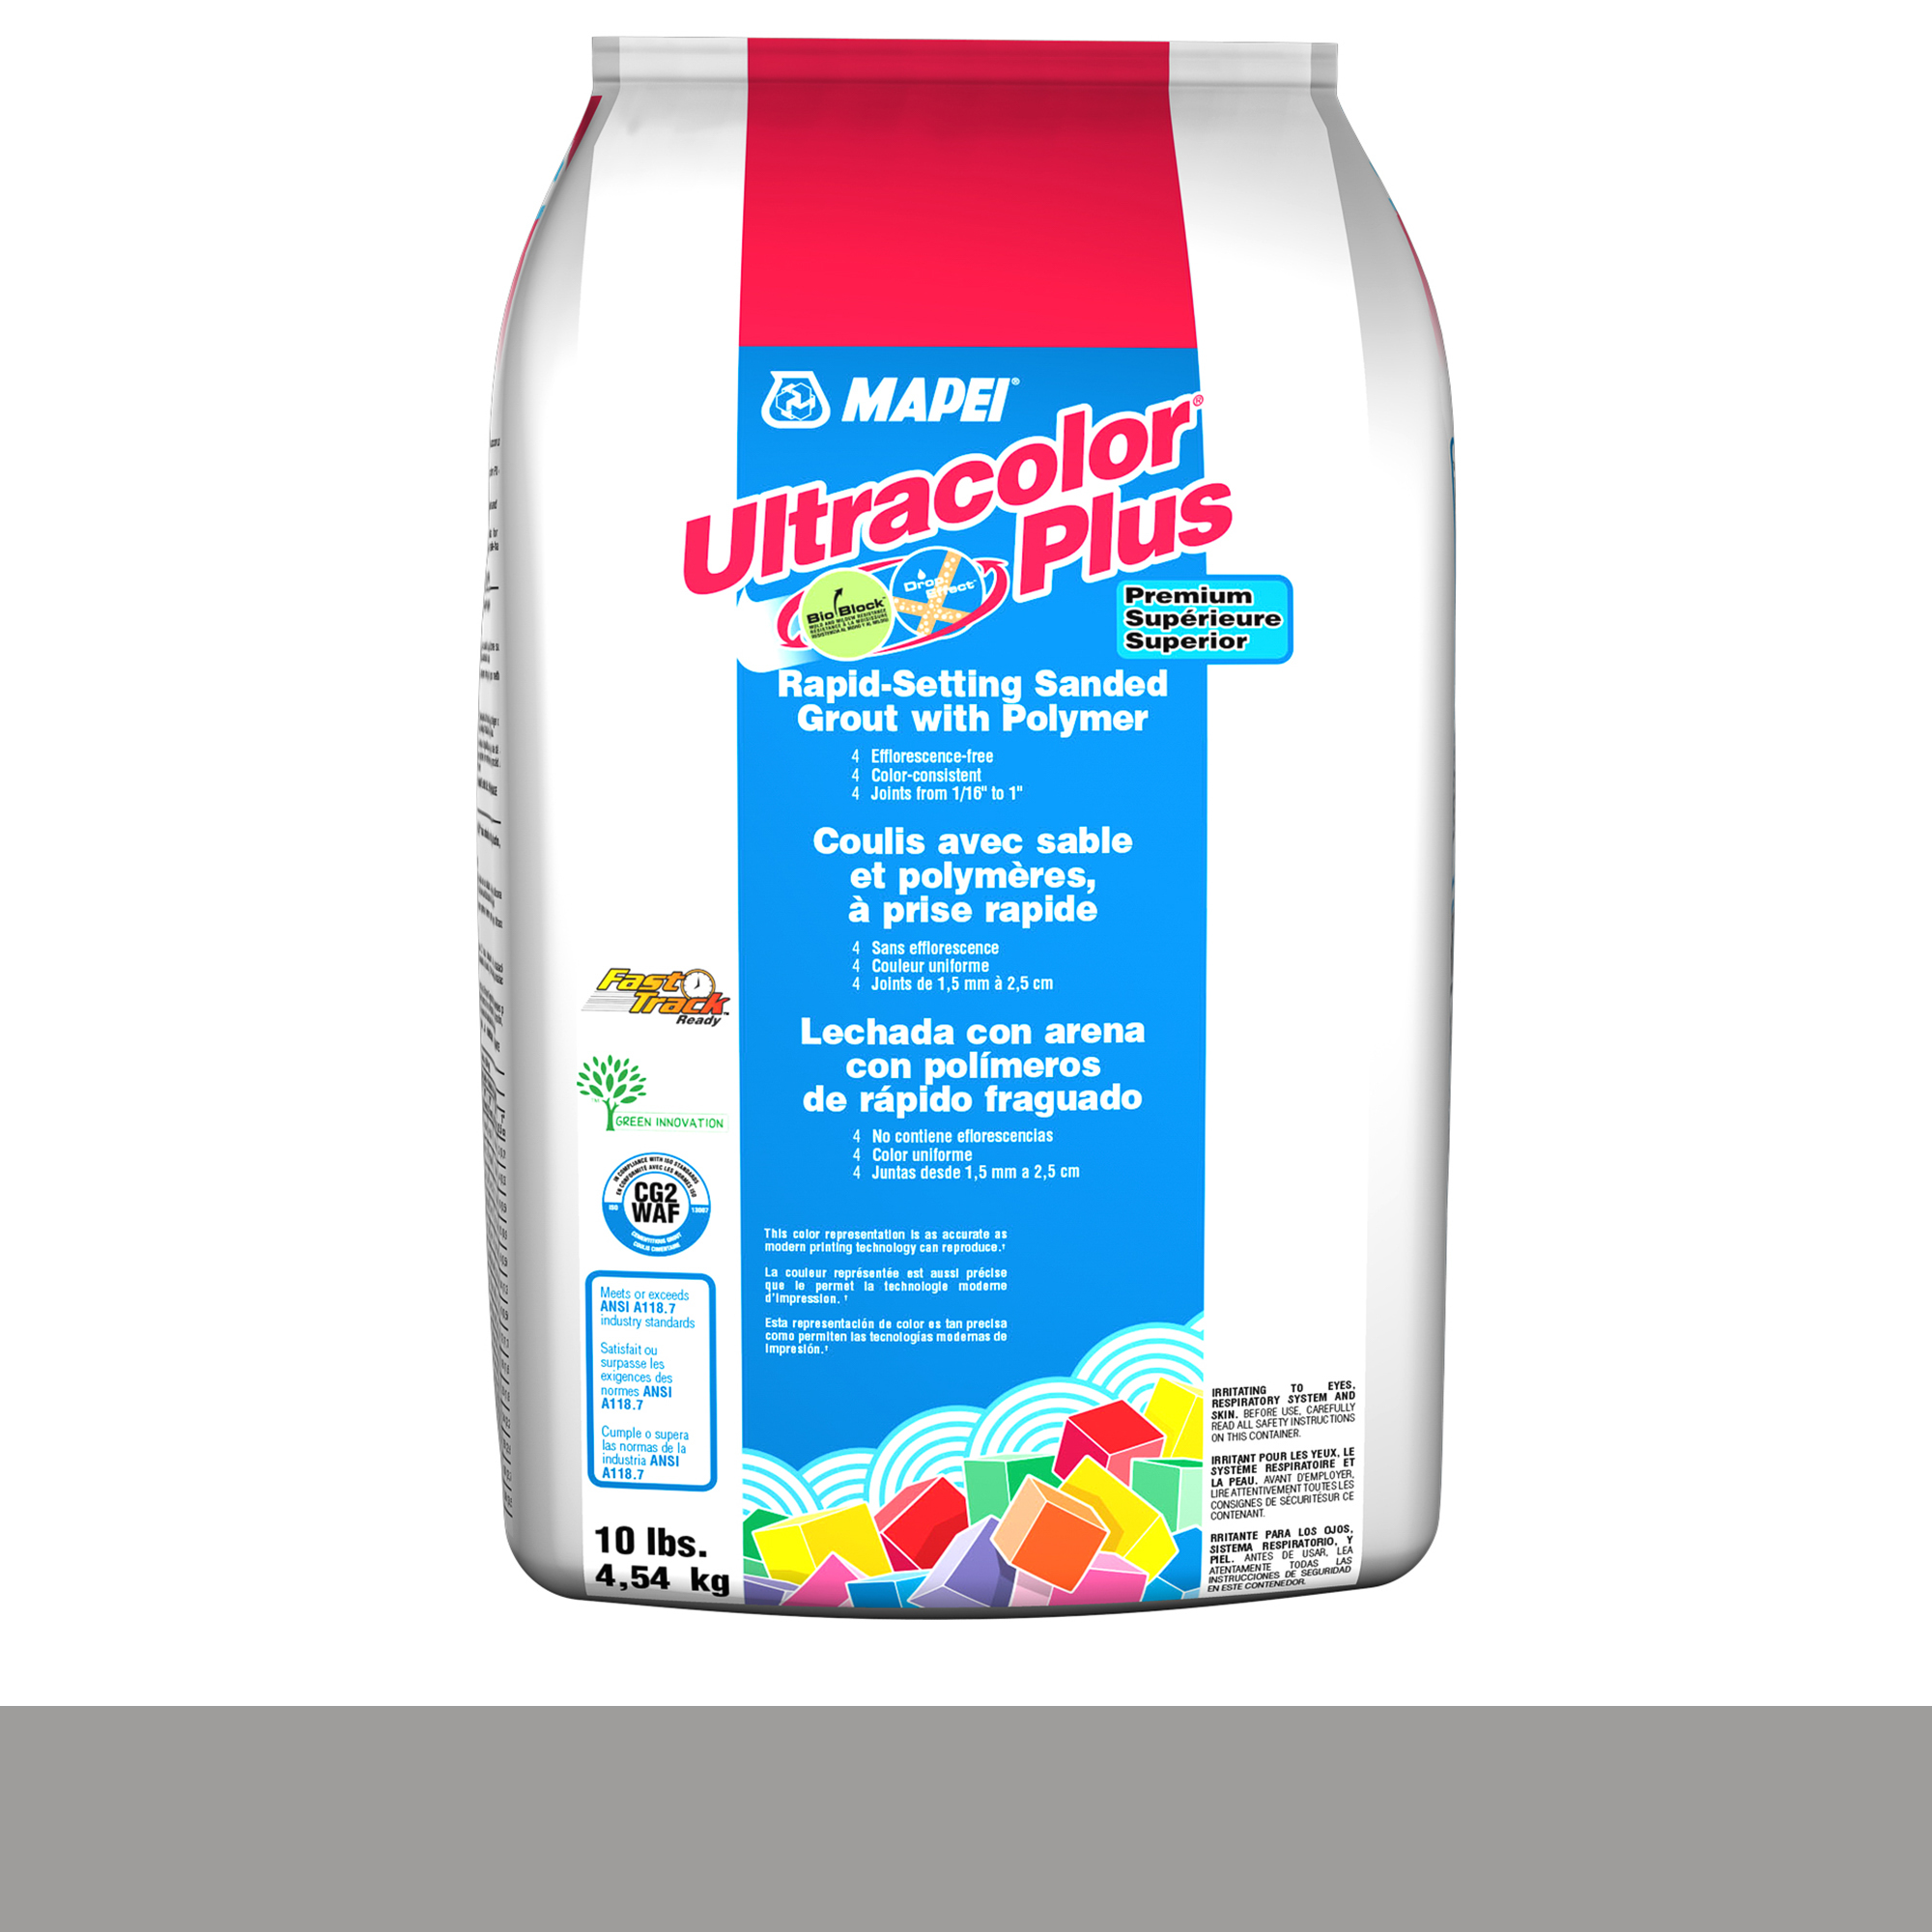 Mapei Ultracolor Plus Fa 104-Timberwolf 10-Lb Bag Grout Sanded product photo